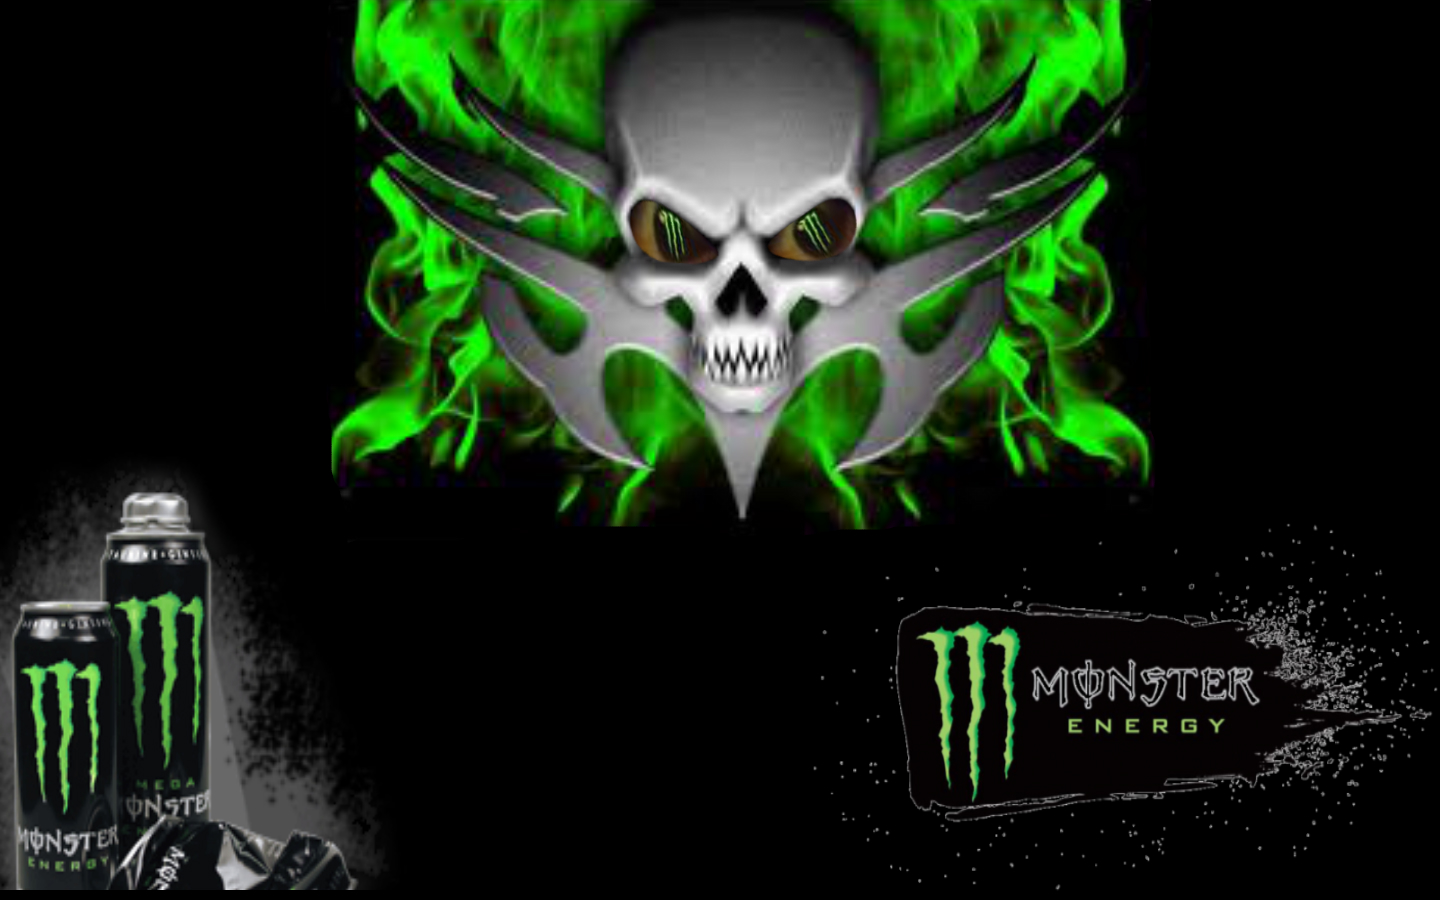 Monster Energy Computer Wallpapers Desktop Backgrounds 1440x900 1440x900